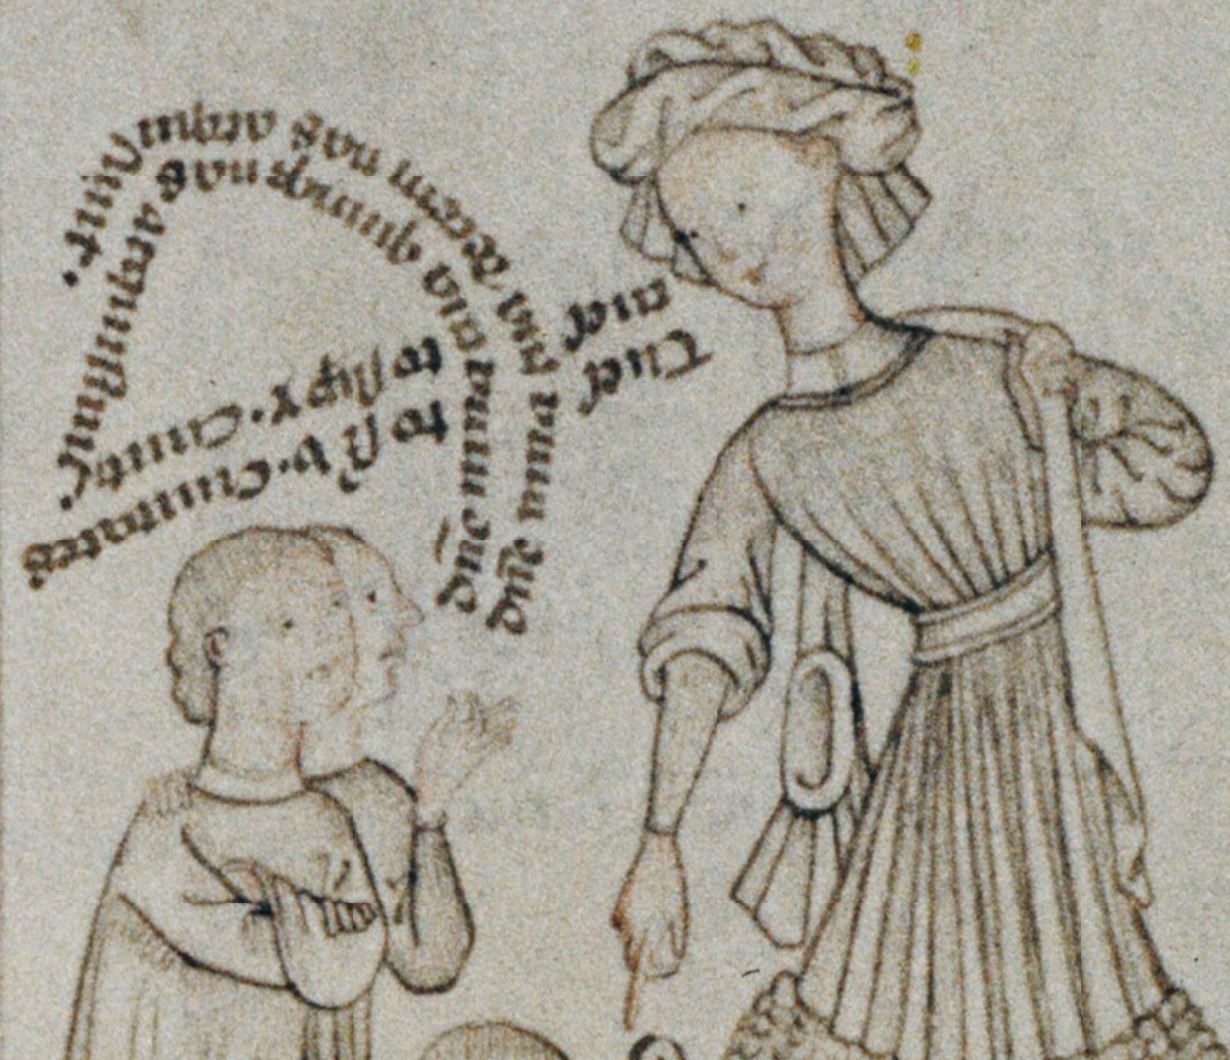 Speculum humanae salvationis 1430-50 Oxford, Bodleian Library Douce 204, fol. 40r detail